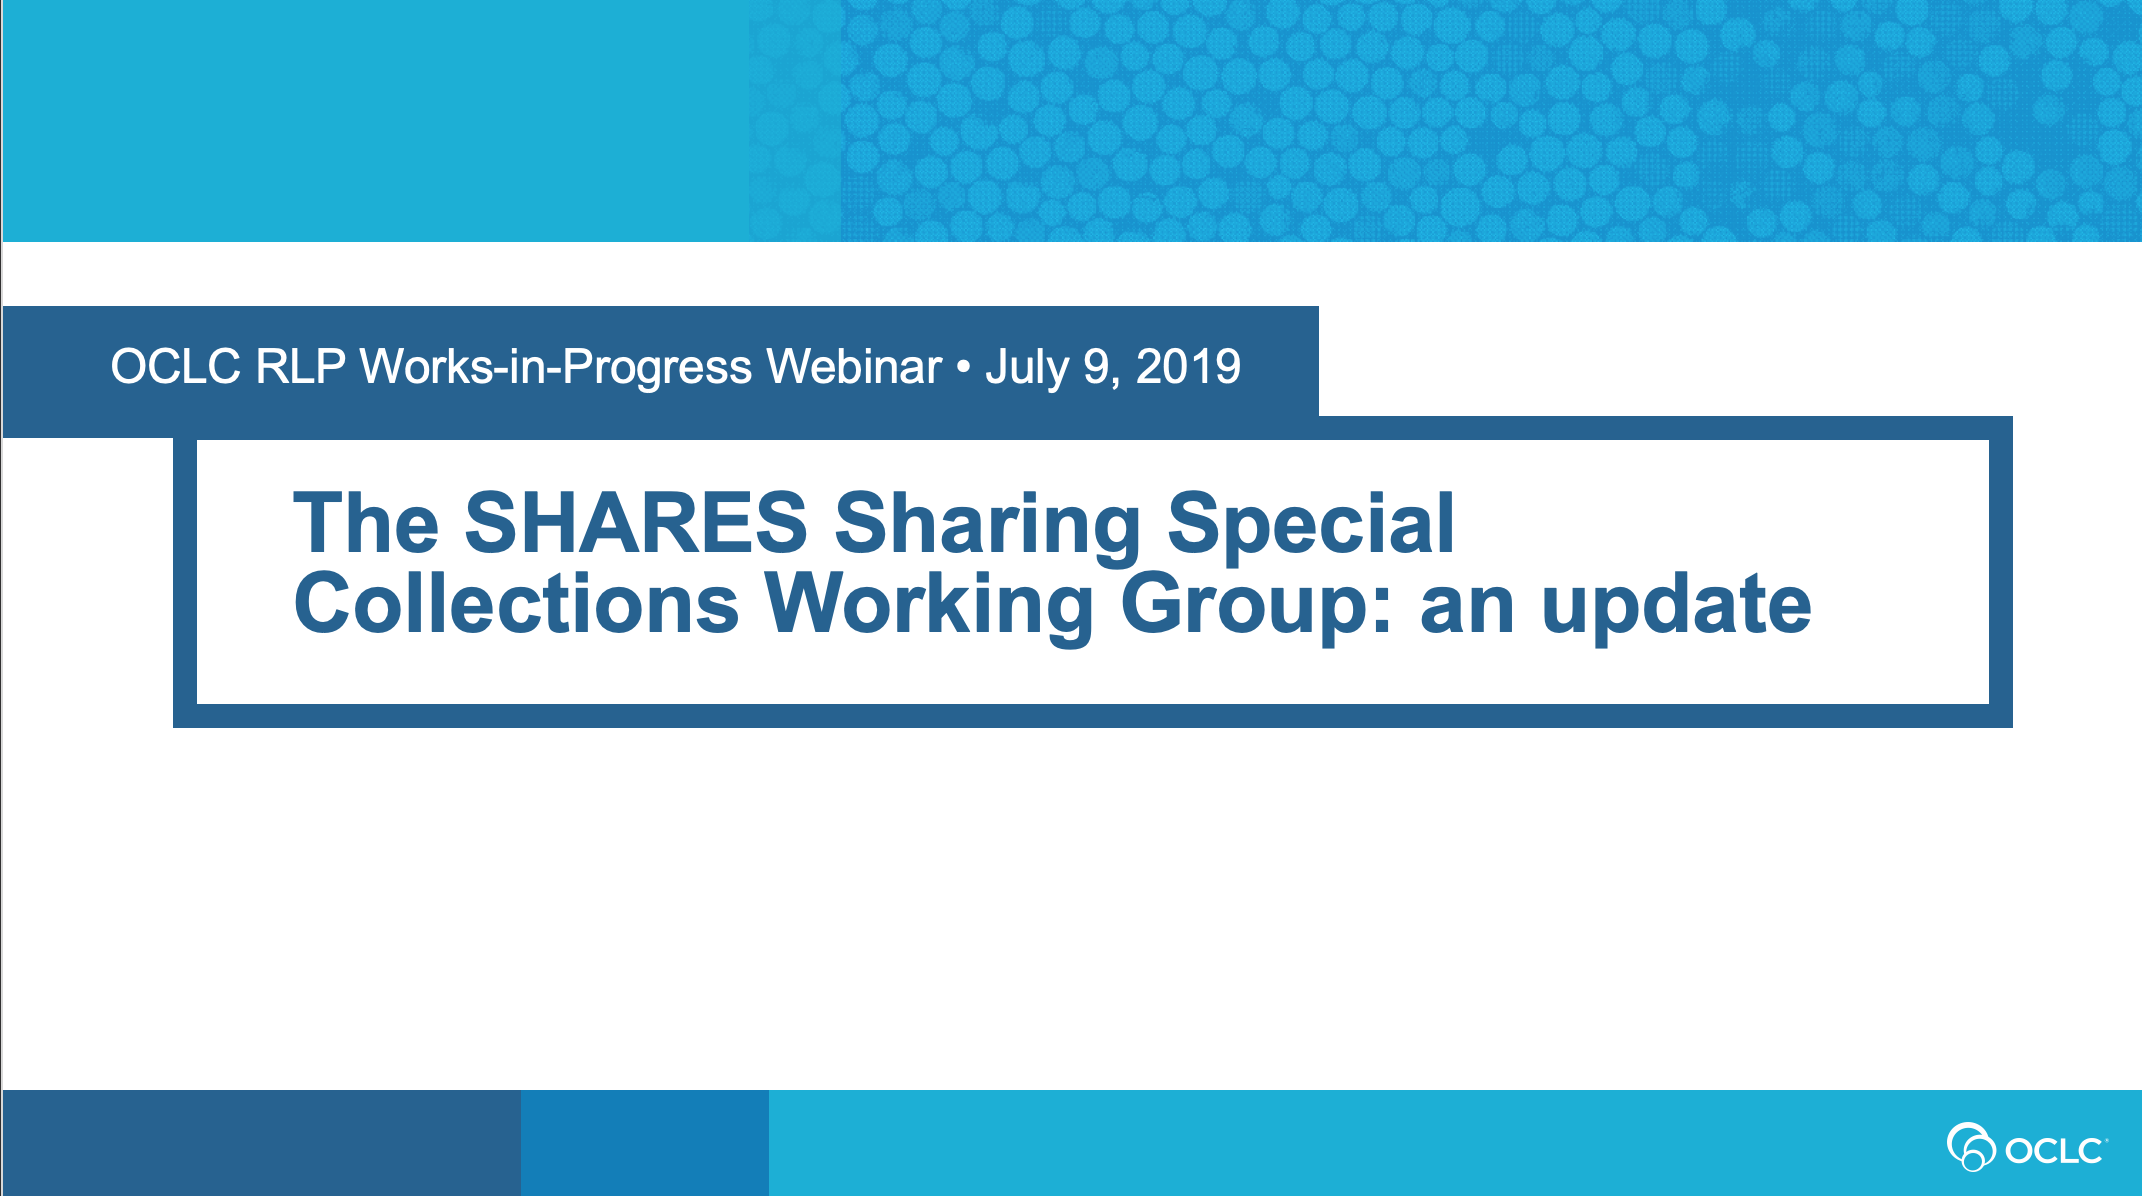 OCLC RLP SHARES Sharing Special Collections Working Group Update